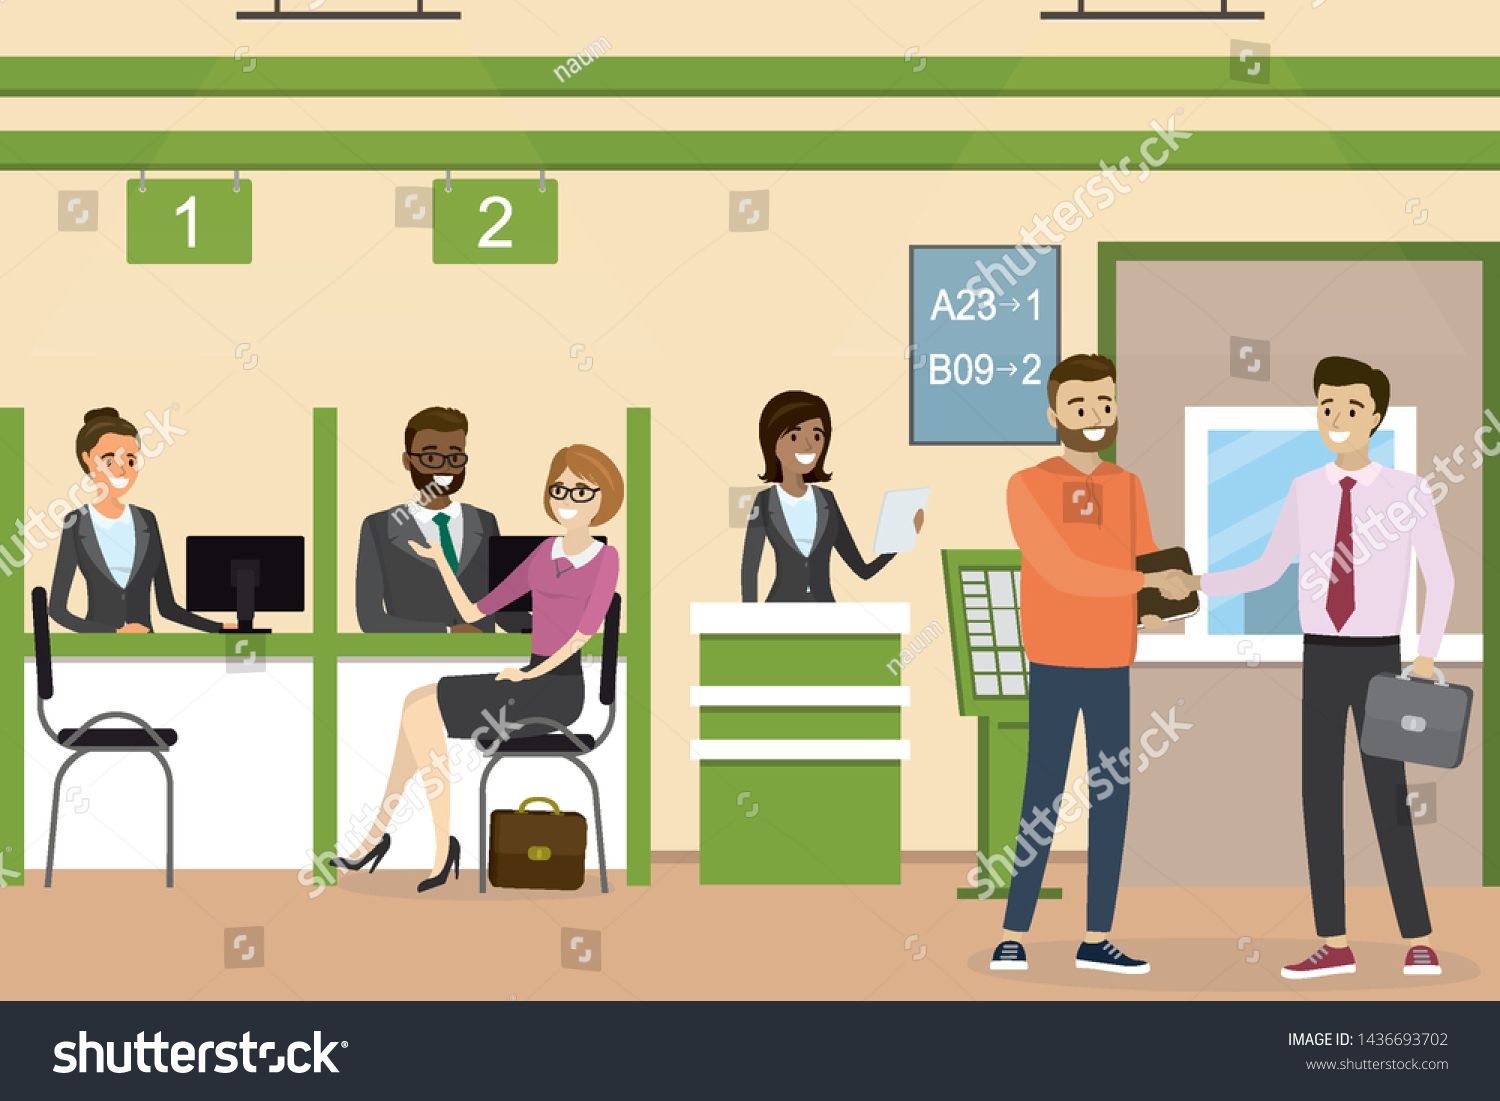 People Inside Bank Office Interior Design Concept With Various Business People Cartoon Bank Ma Graphic Arts Illustration Office Interior Design Illustration